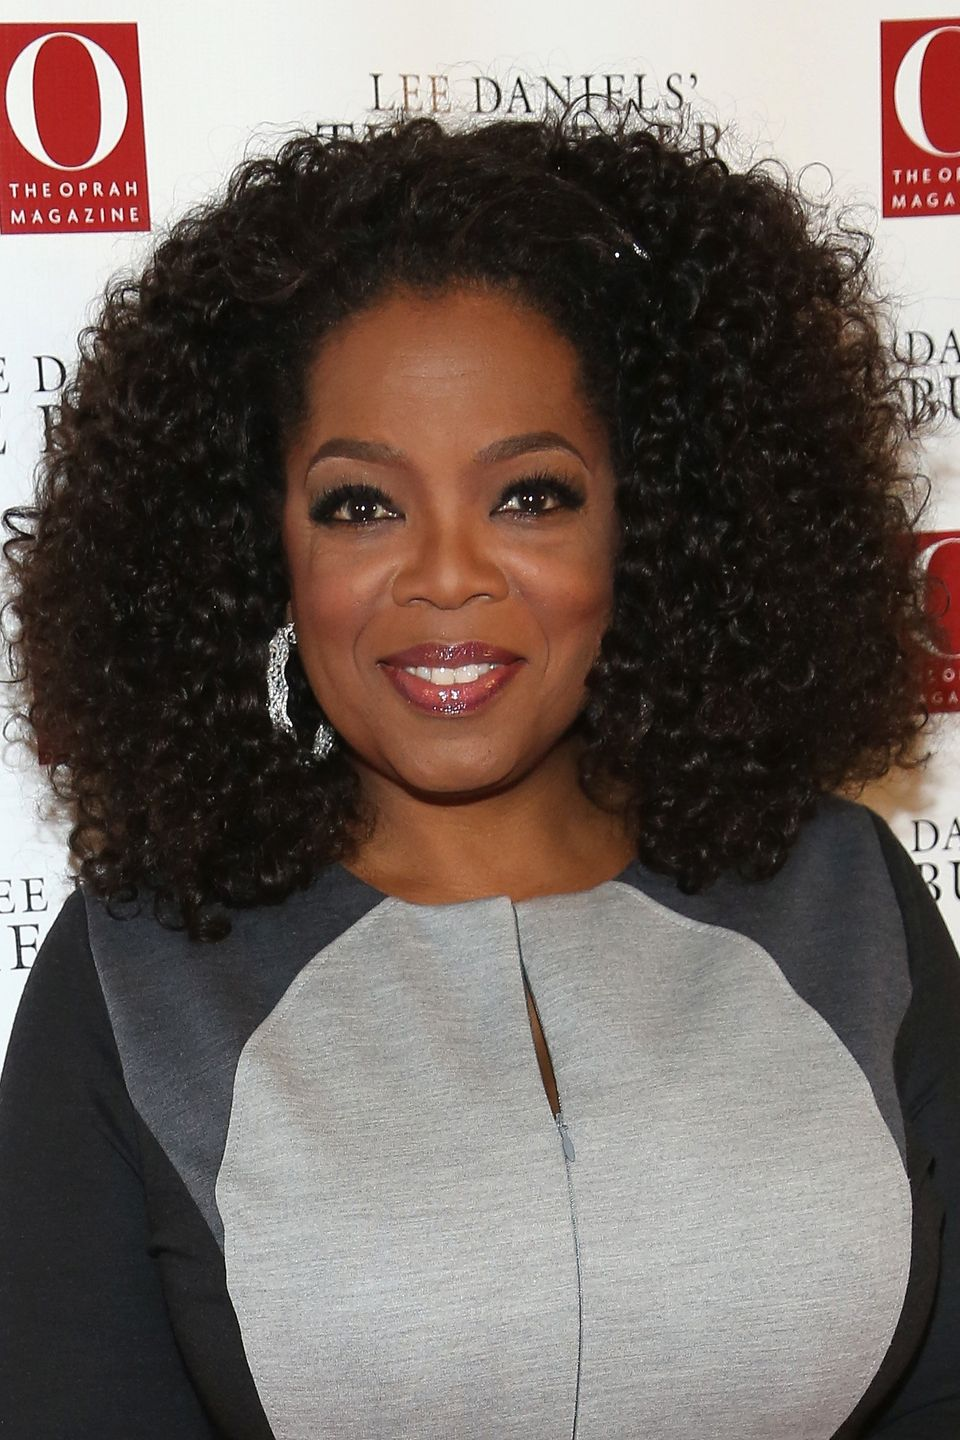 Oprah Winfrey Has Taken A Pretty Amazing Hair Journey Through The